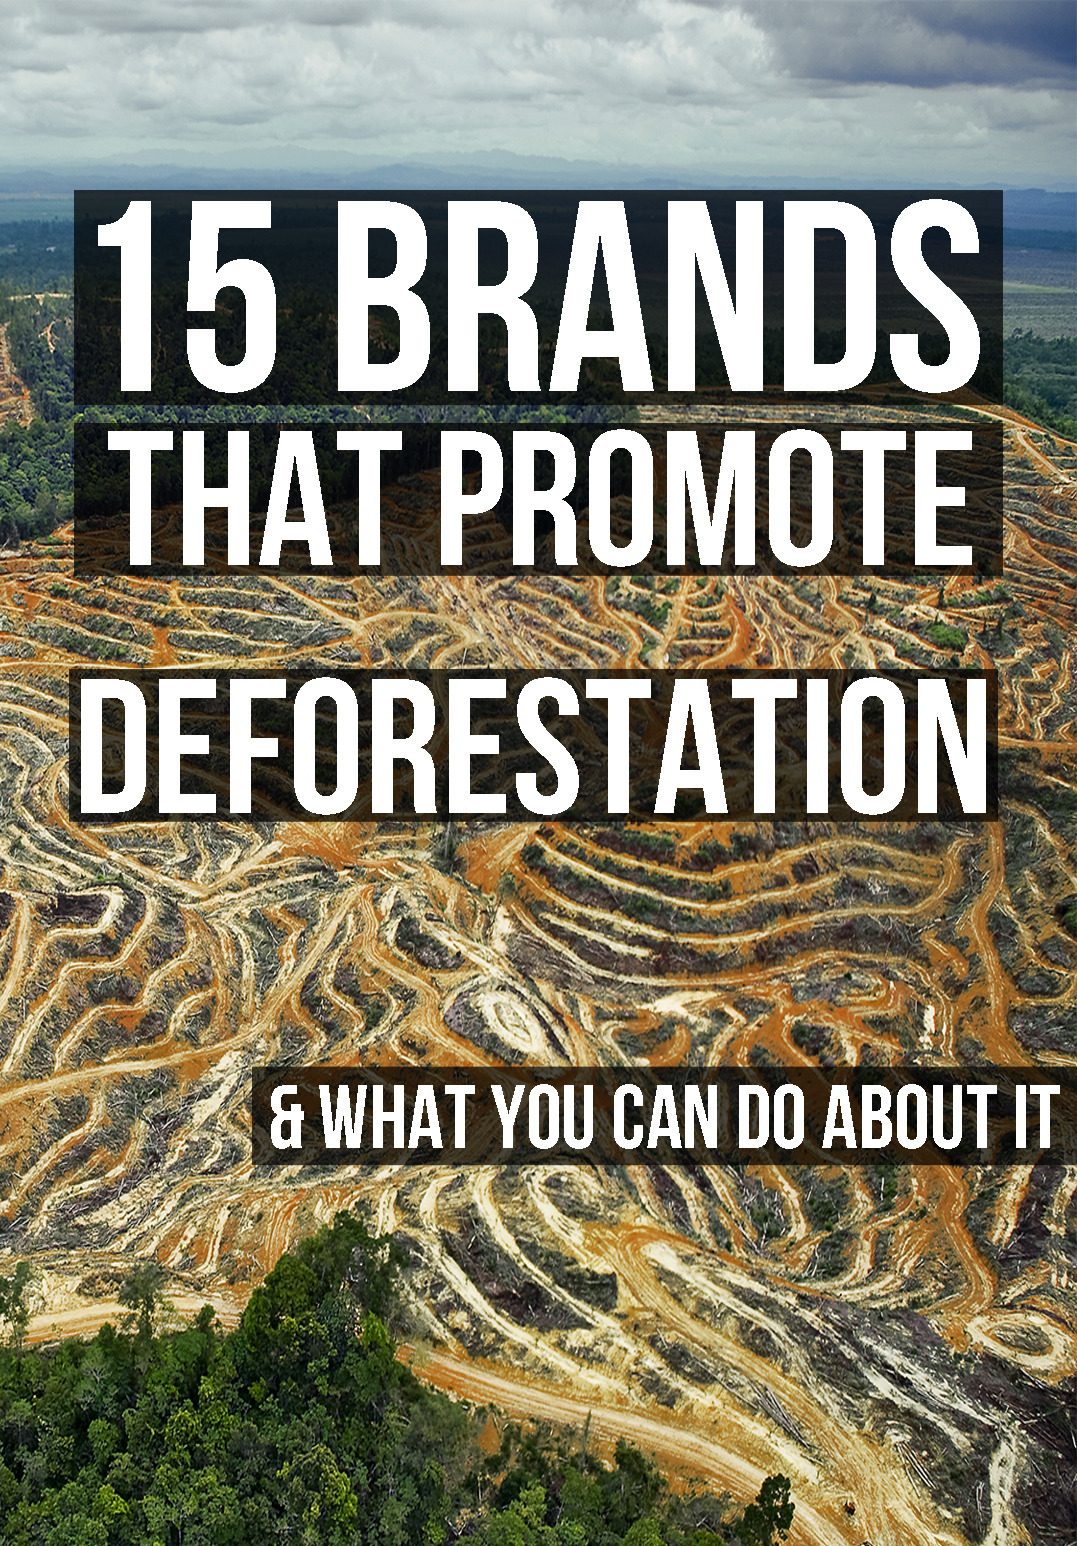 deforestation, ethical fashion, ralph laurent, forever 21, michael kors deforestation, boycott ralph lauren